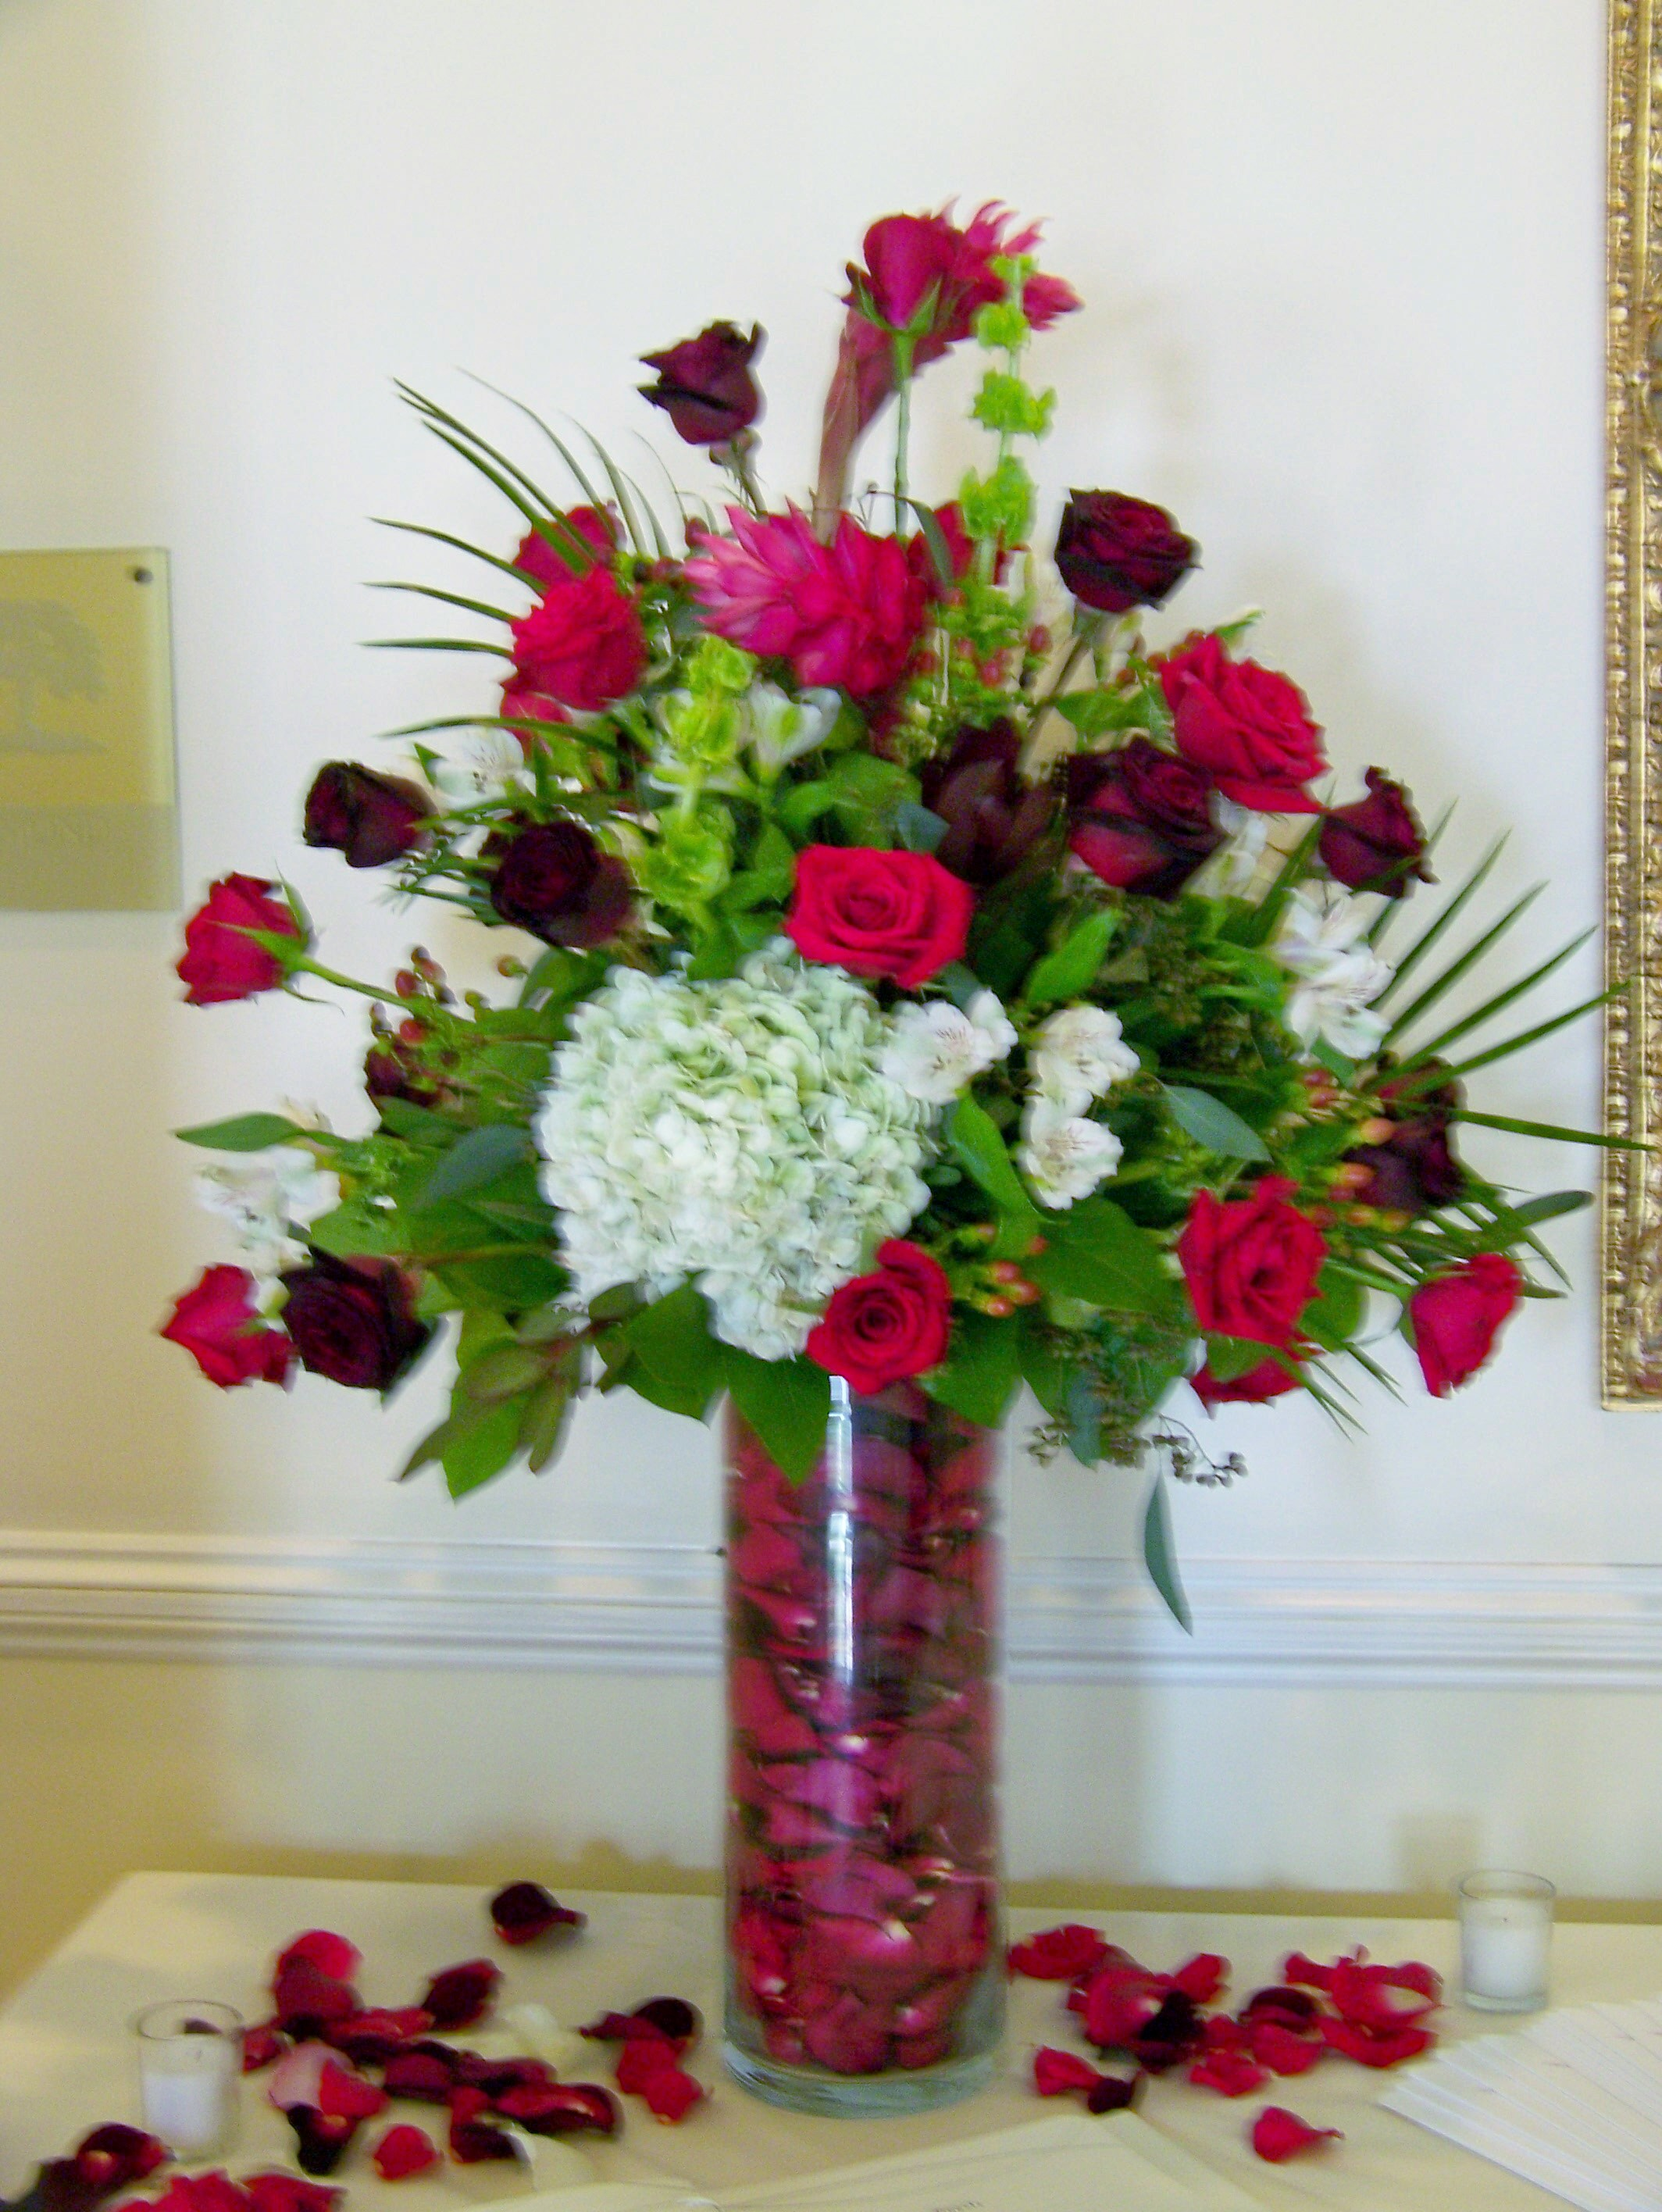 Very best What do you do with that large glass vase? | LZ Floral's Blog YB48